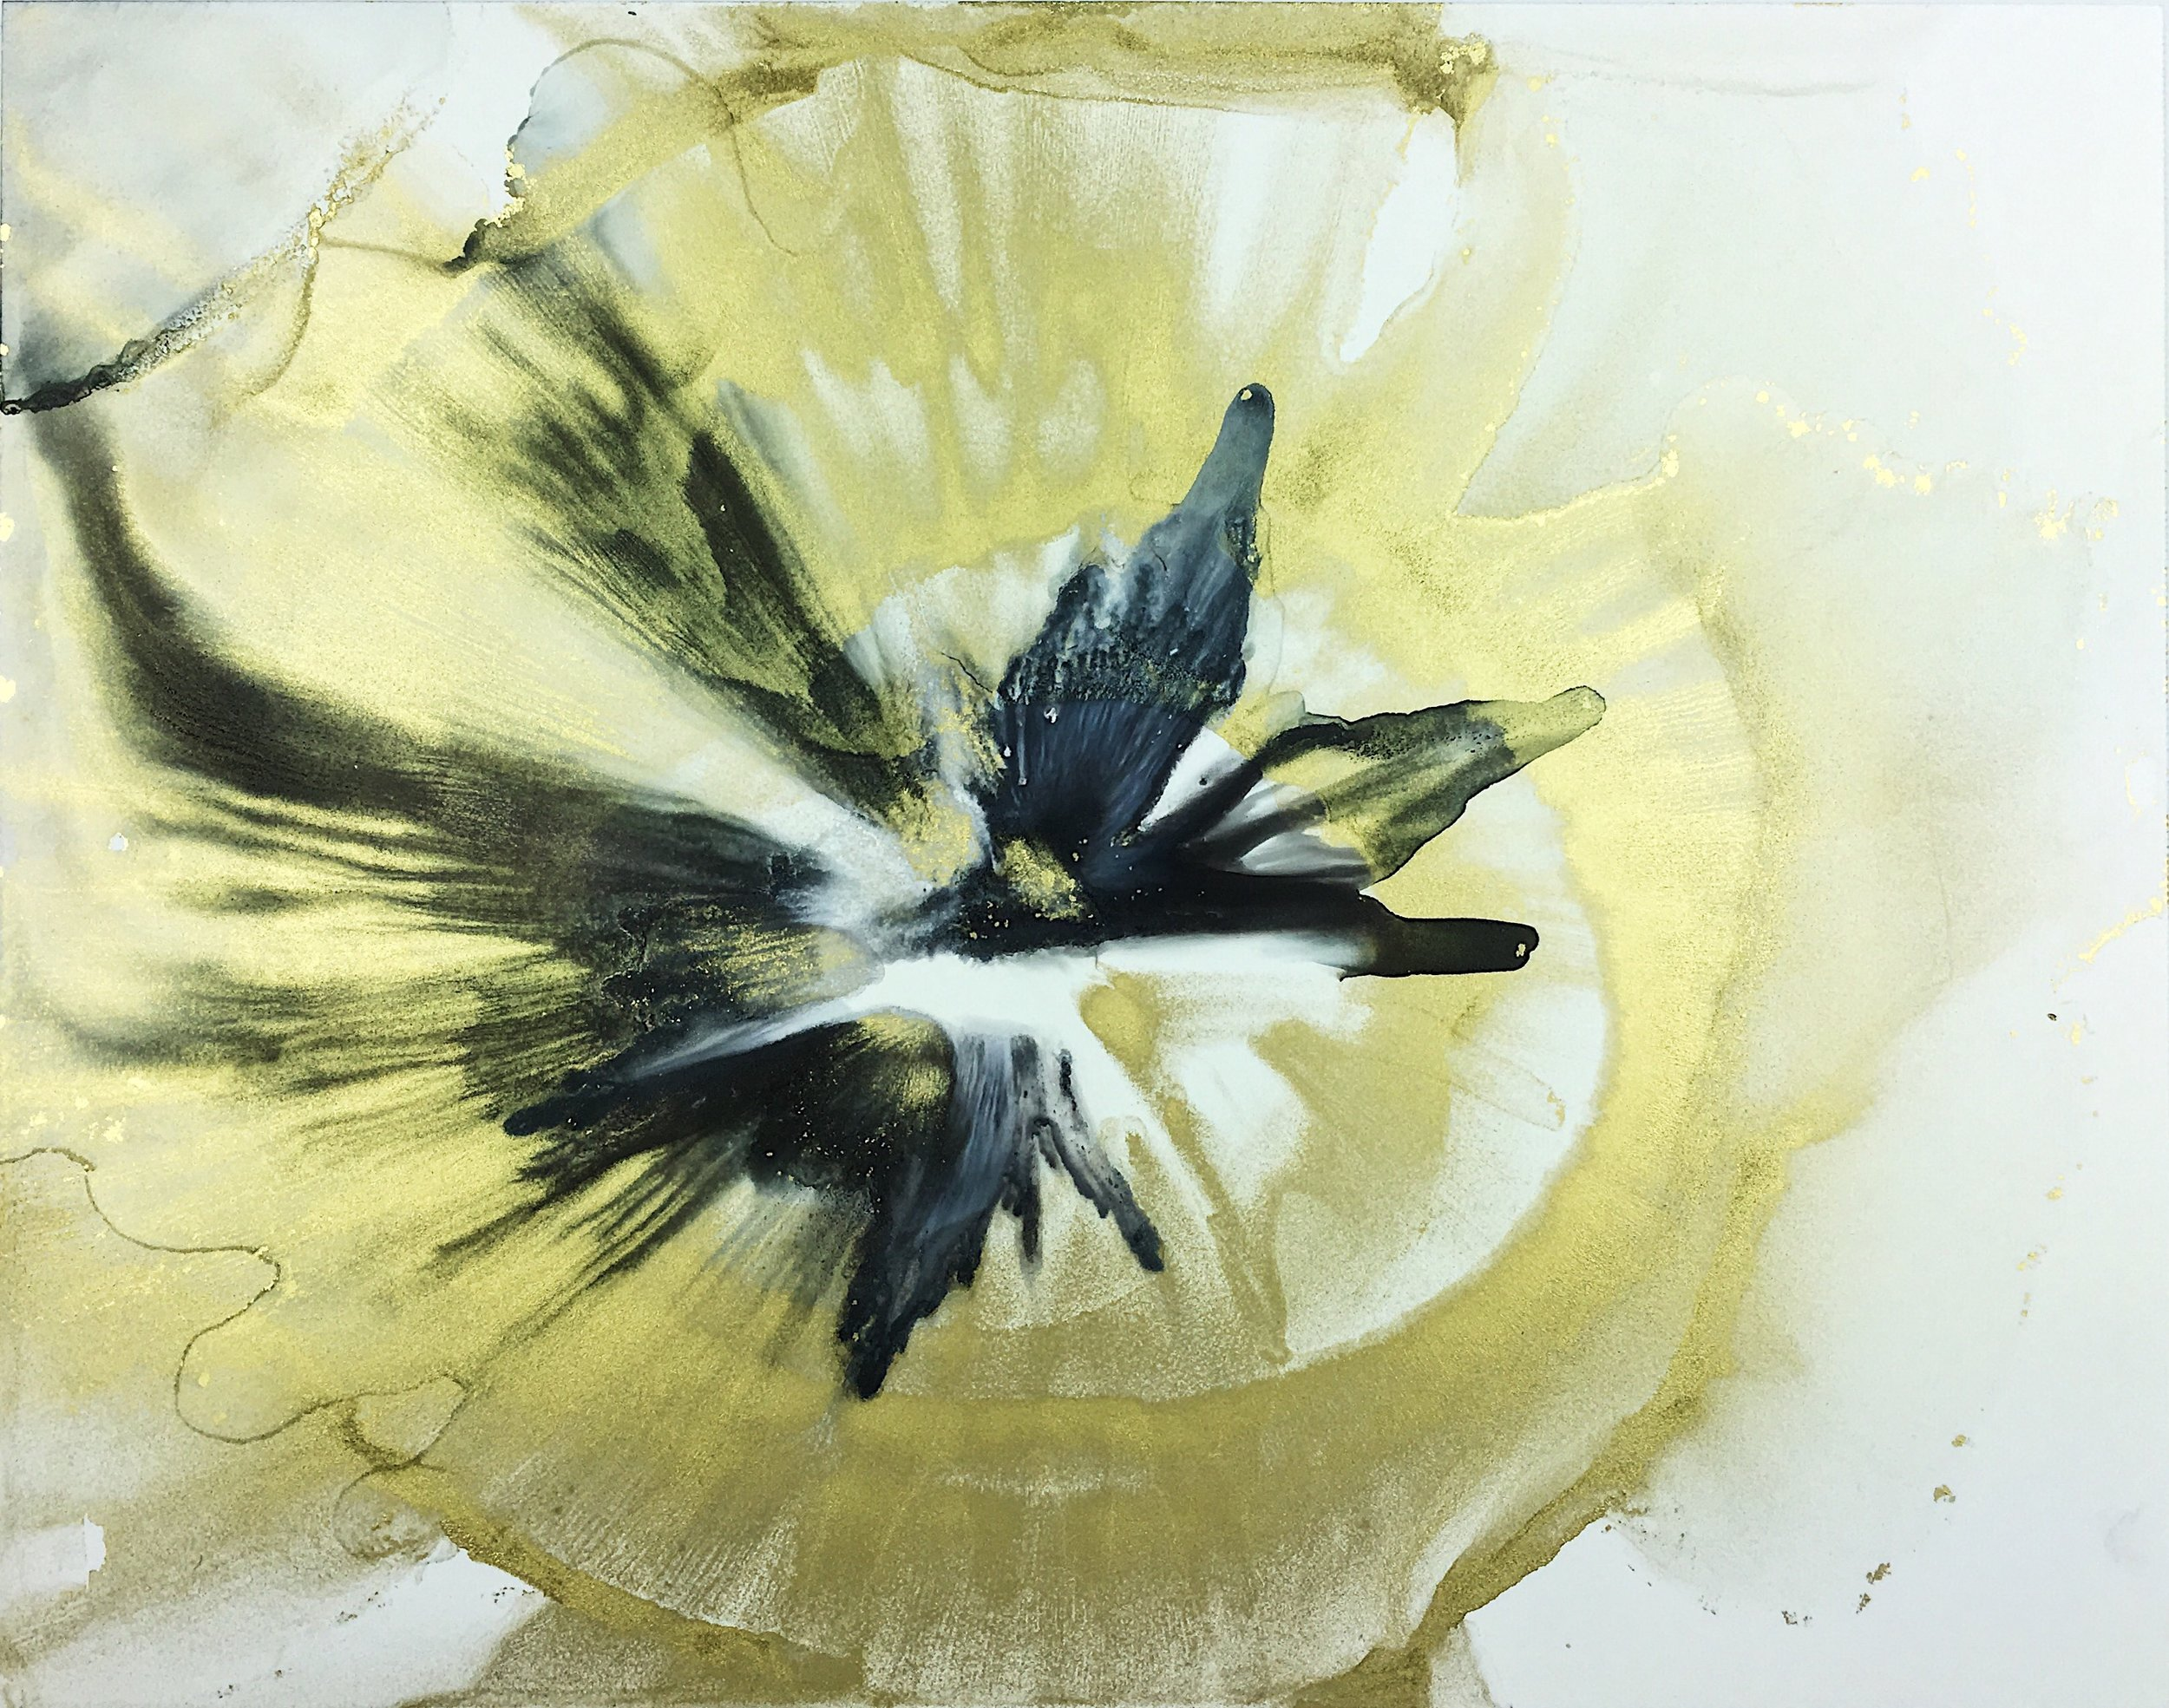 30 Days of Gold Project - Painting Number 23. 11 X 14 Alcohol Ink on Yupo - Copyright